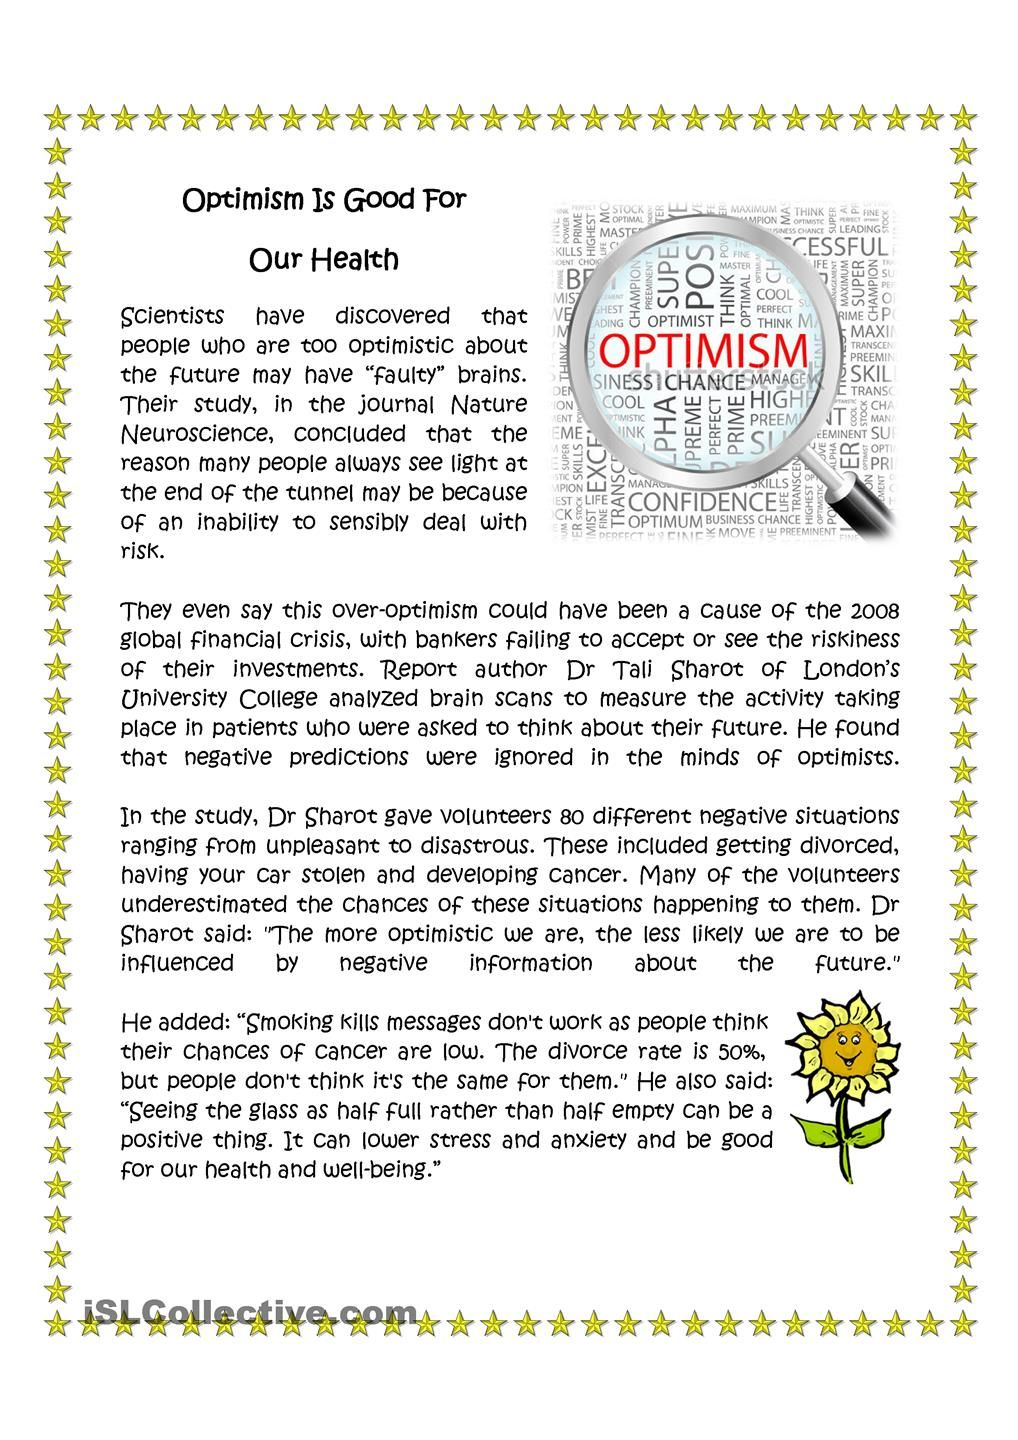 Optimism Is Good For Your Health English Language Learning Activities Esl Reading Reading Passages [ 1440 x 1018 Pixel ]